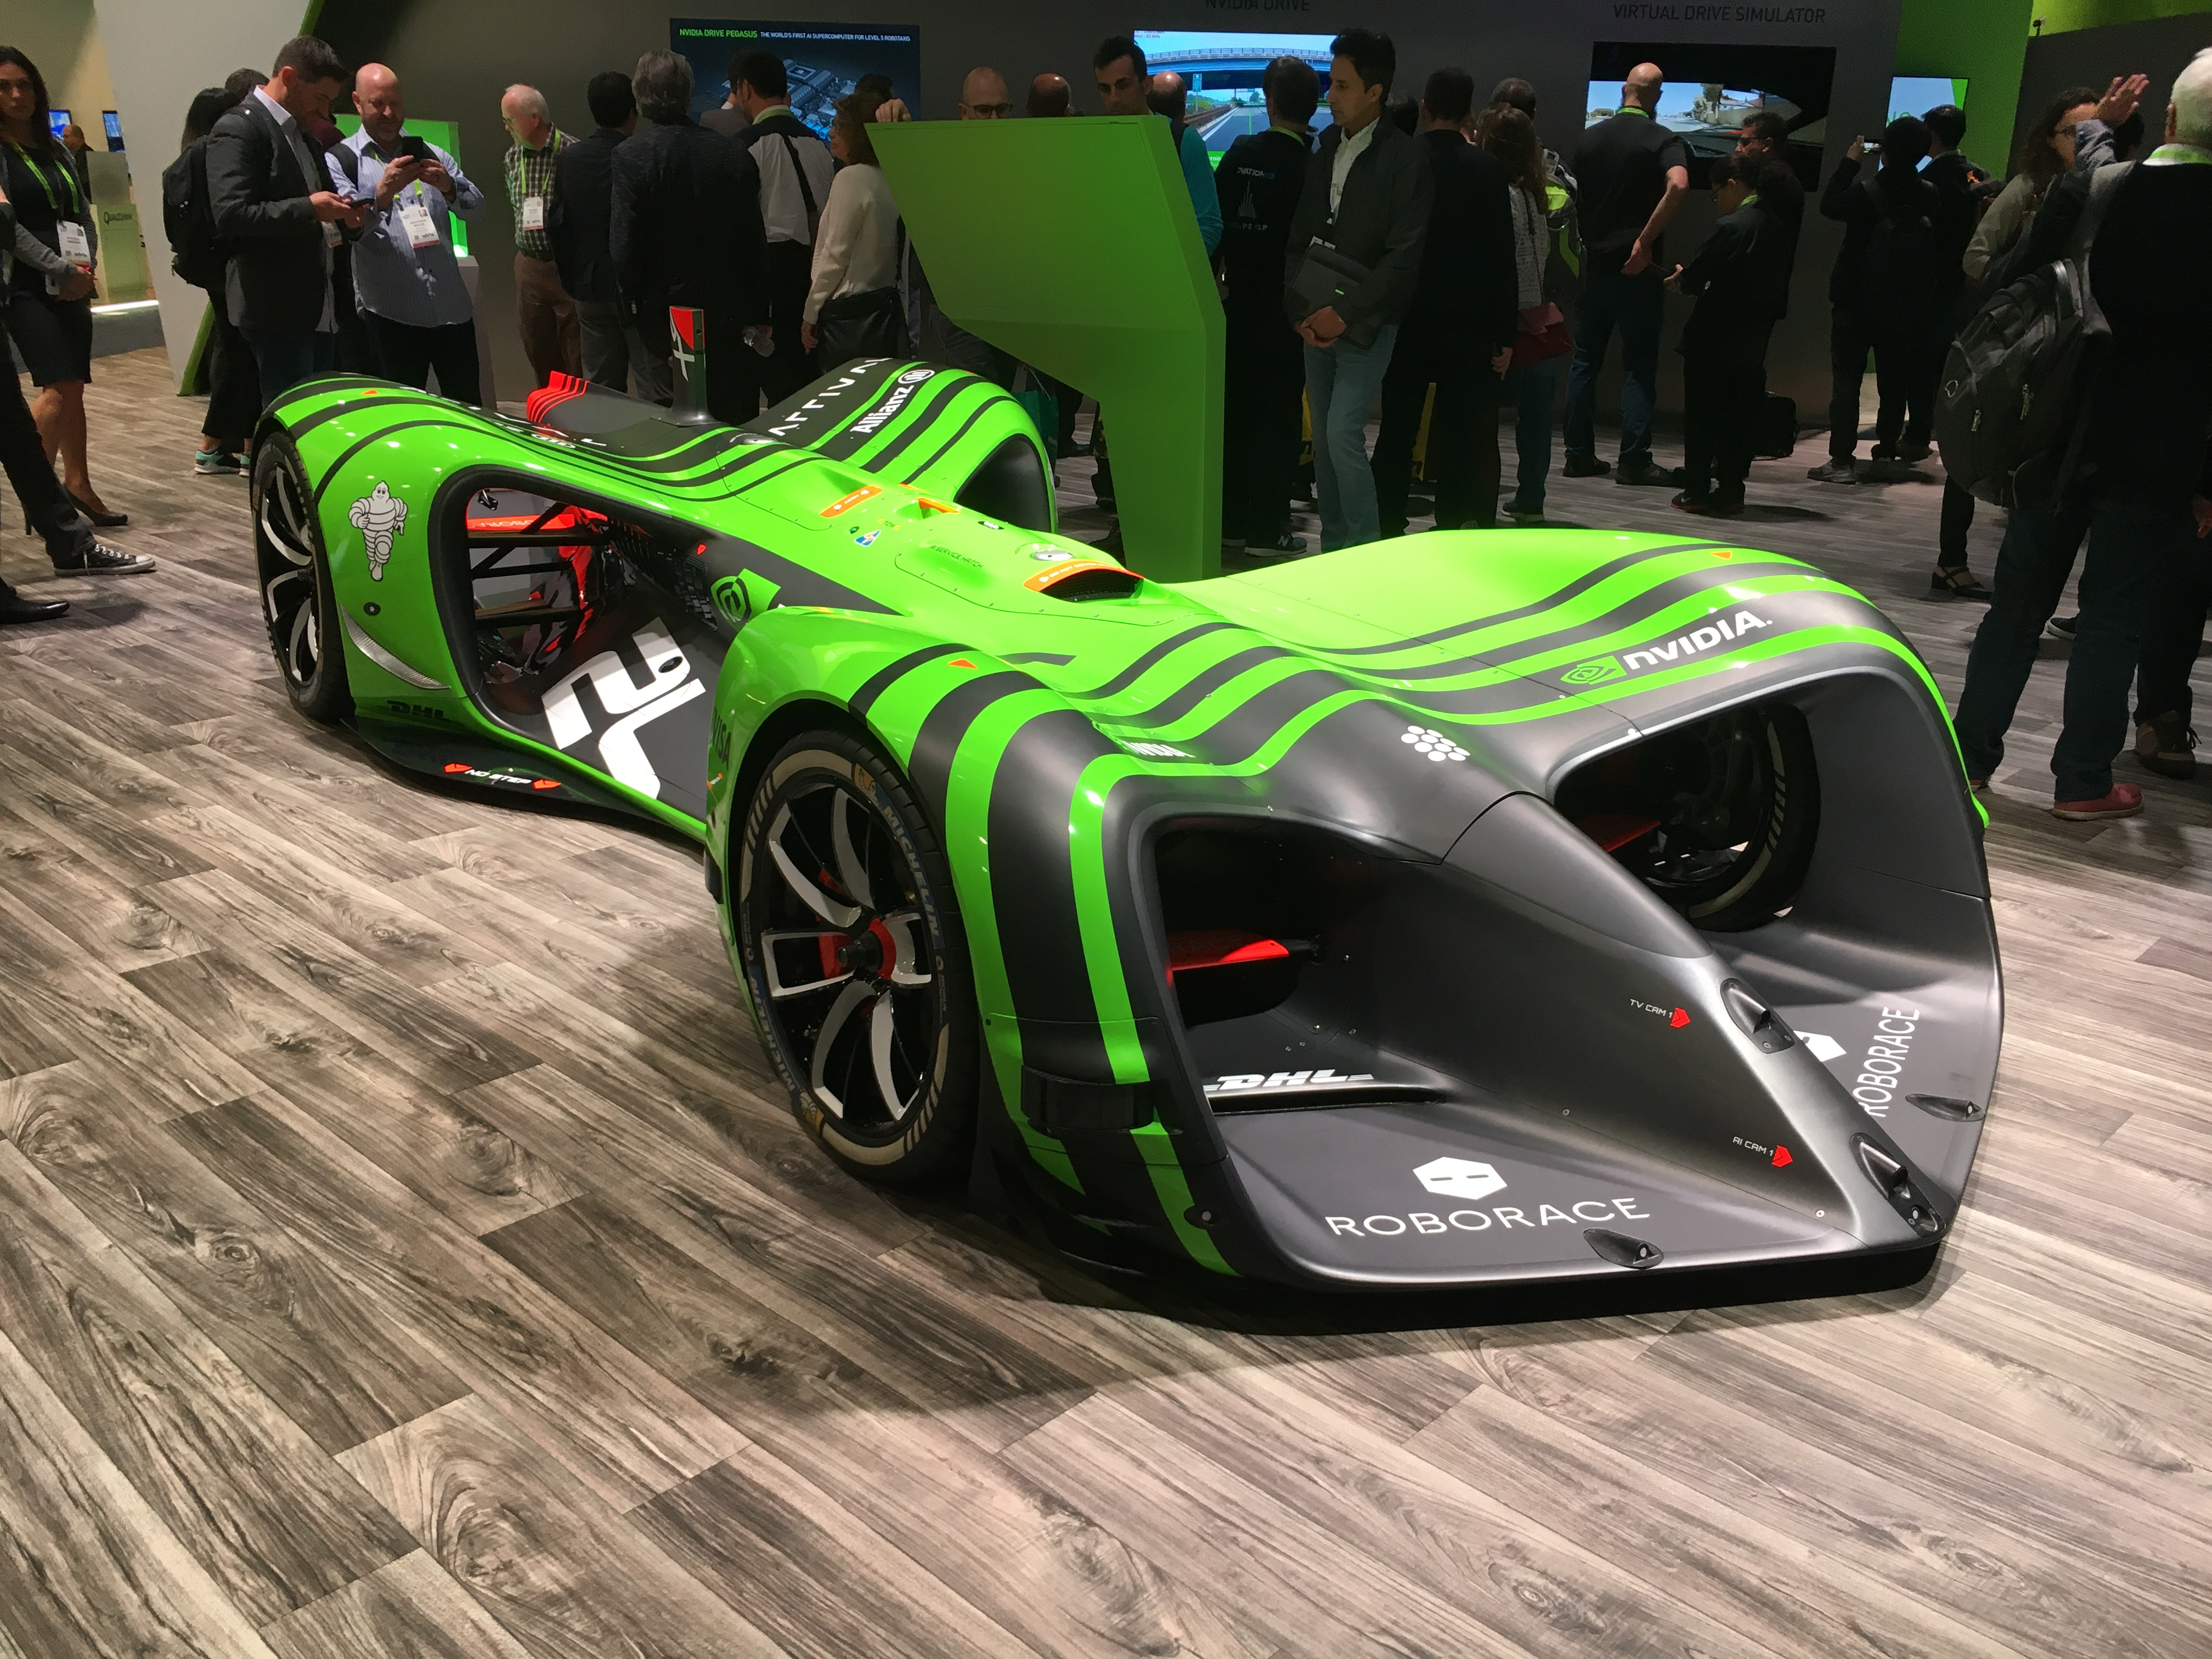 How To Make The Most Of Ces News Sparkfun Electronics Ladder Logic Nvidia Roborace Car